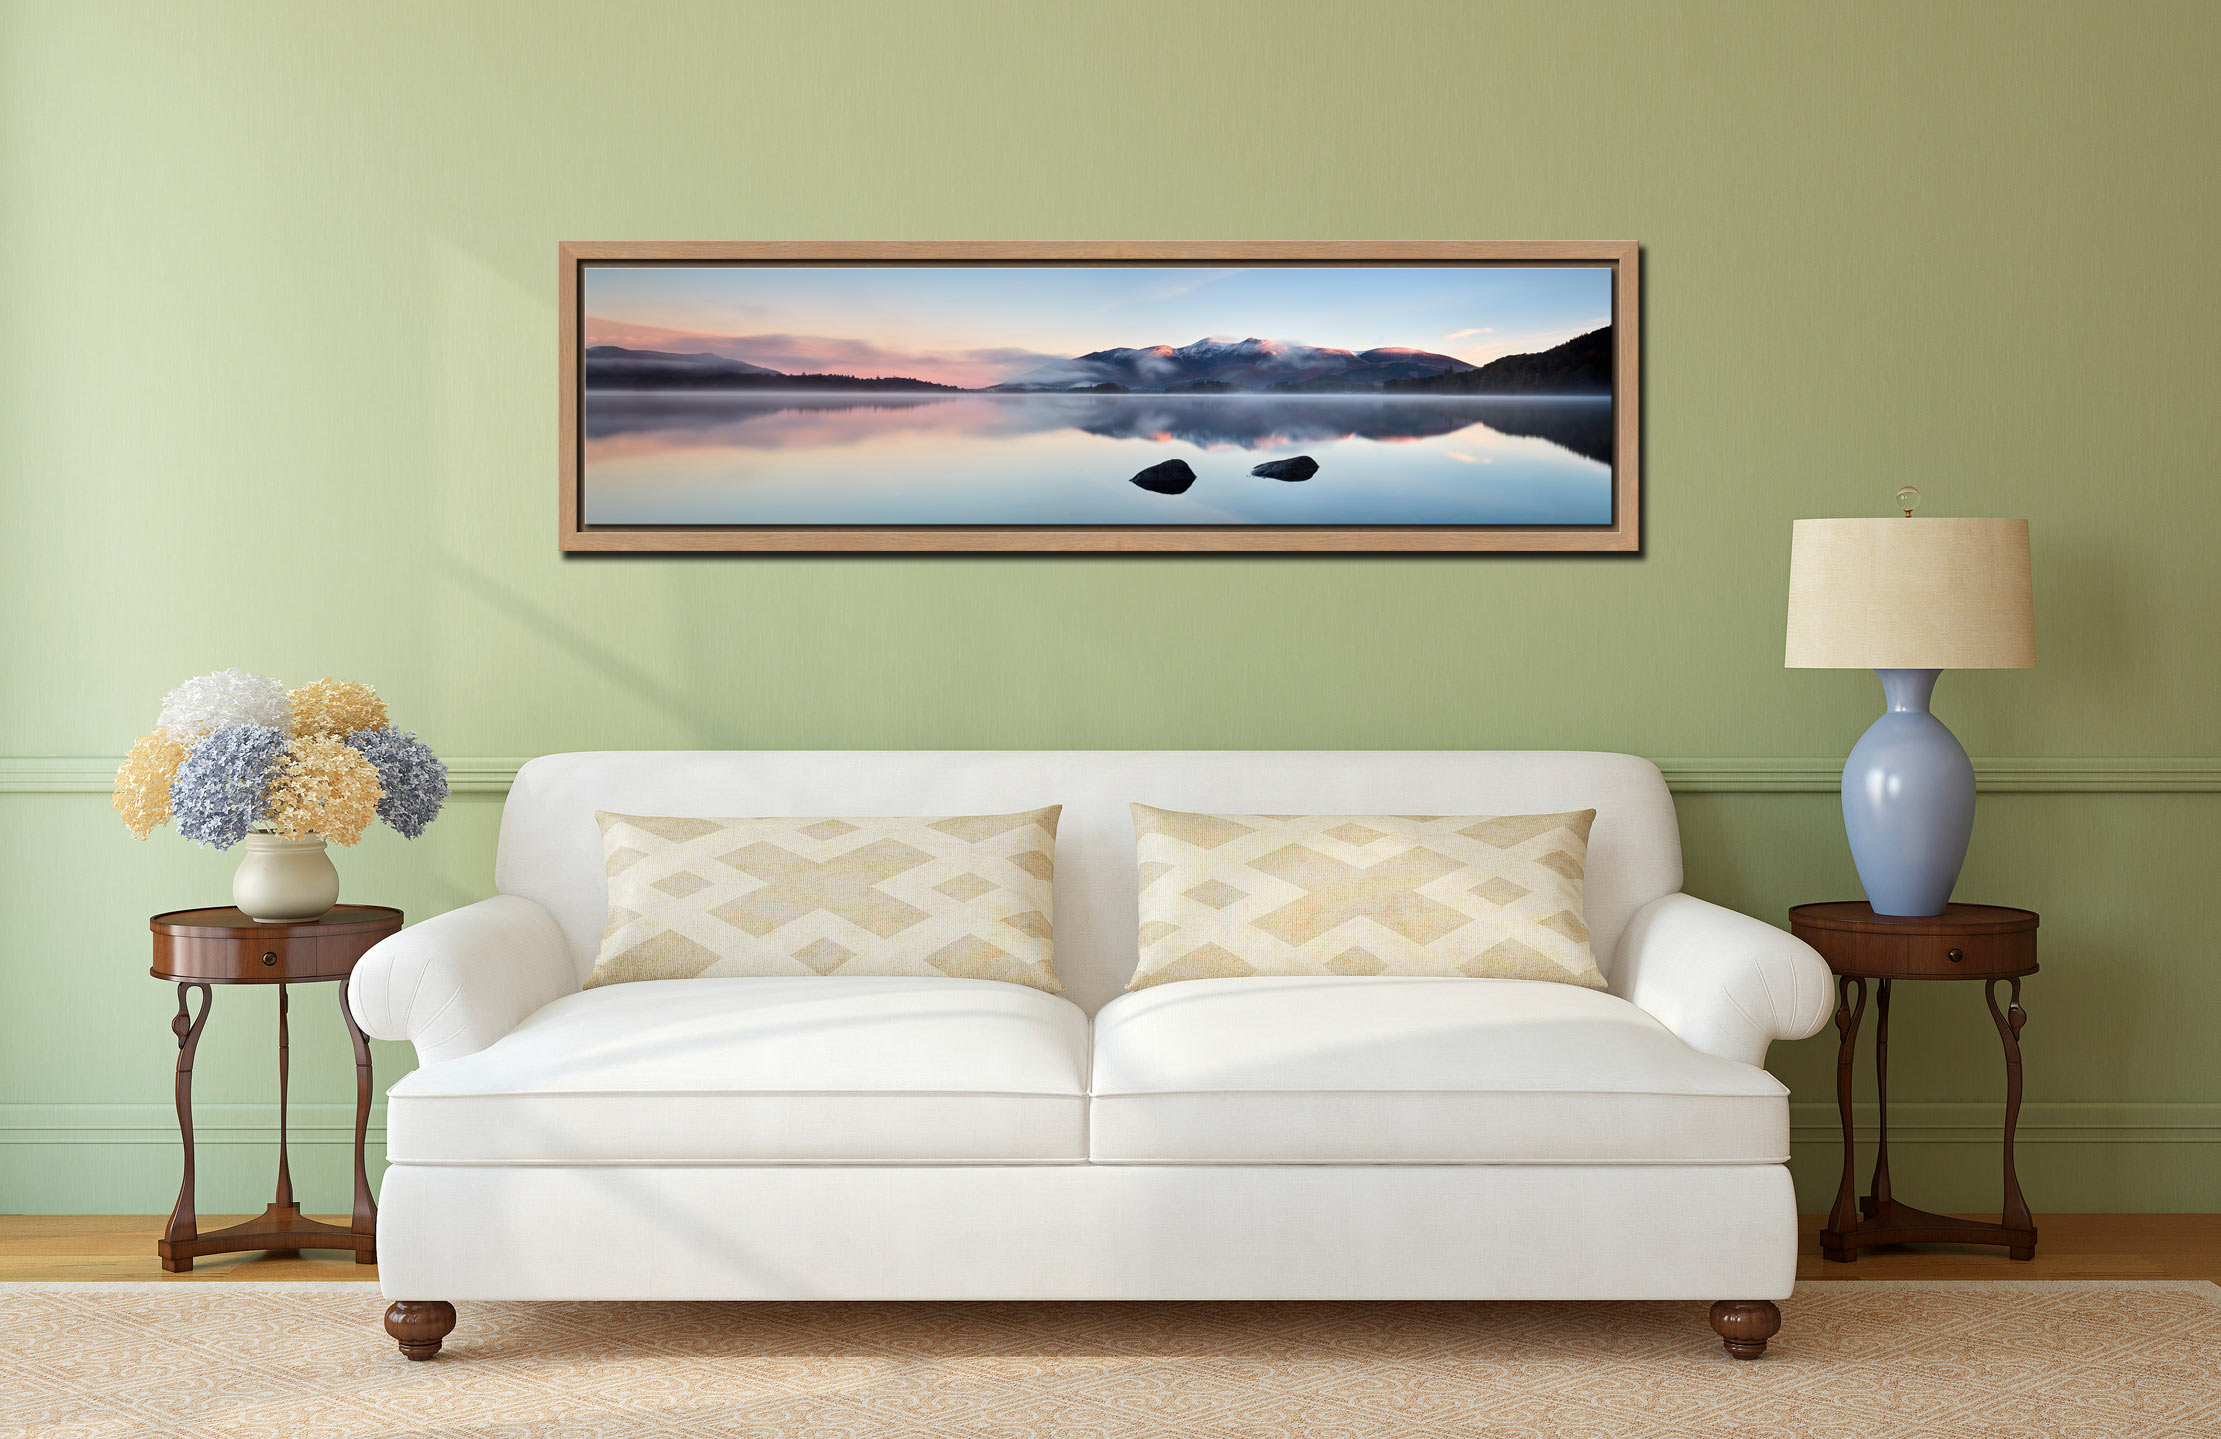 A New Day Dawns at Derwent Water - Oak floater frame with acrylic glazing on Wall